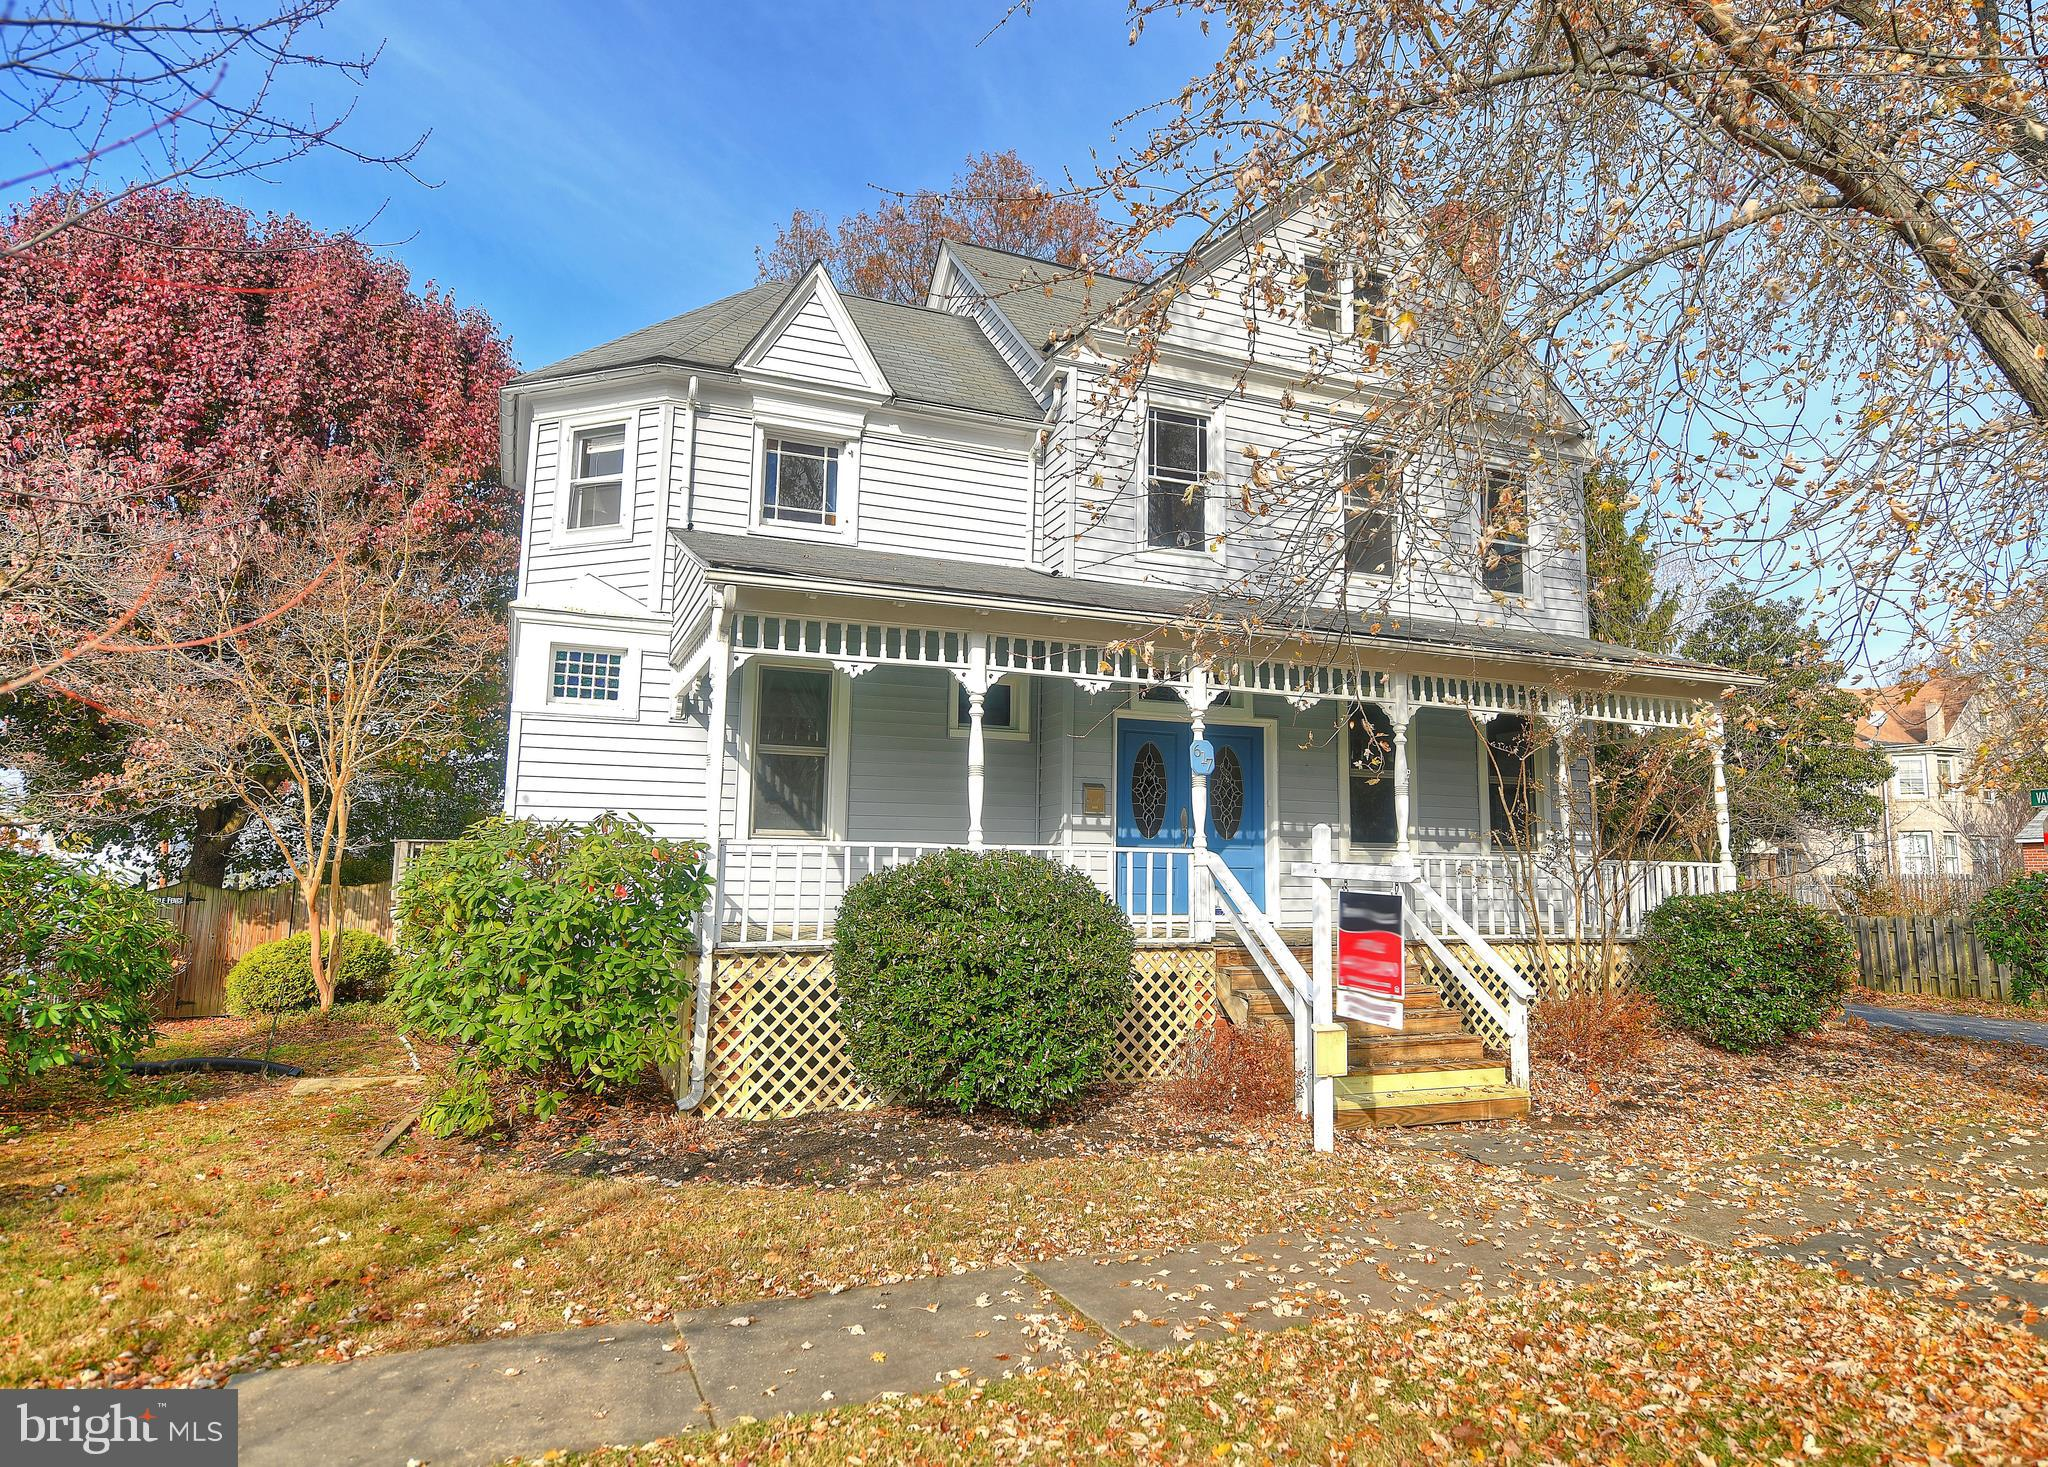 OPEN HOUSE SUNDAY 11/24 FROM 2-4PM.  Beautiful 4 level Victorian in the town of Havre de Grace with